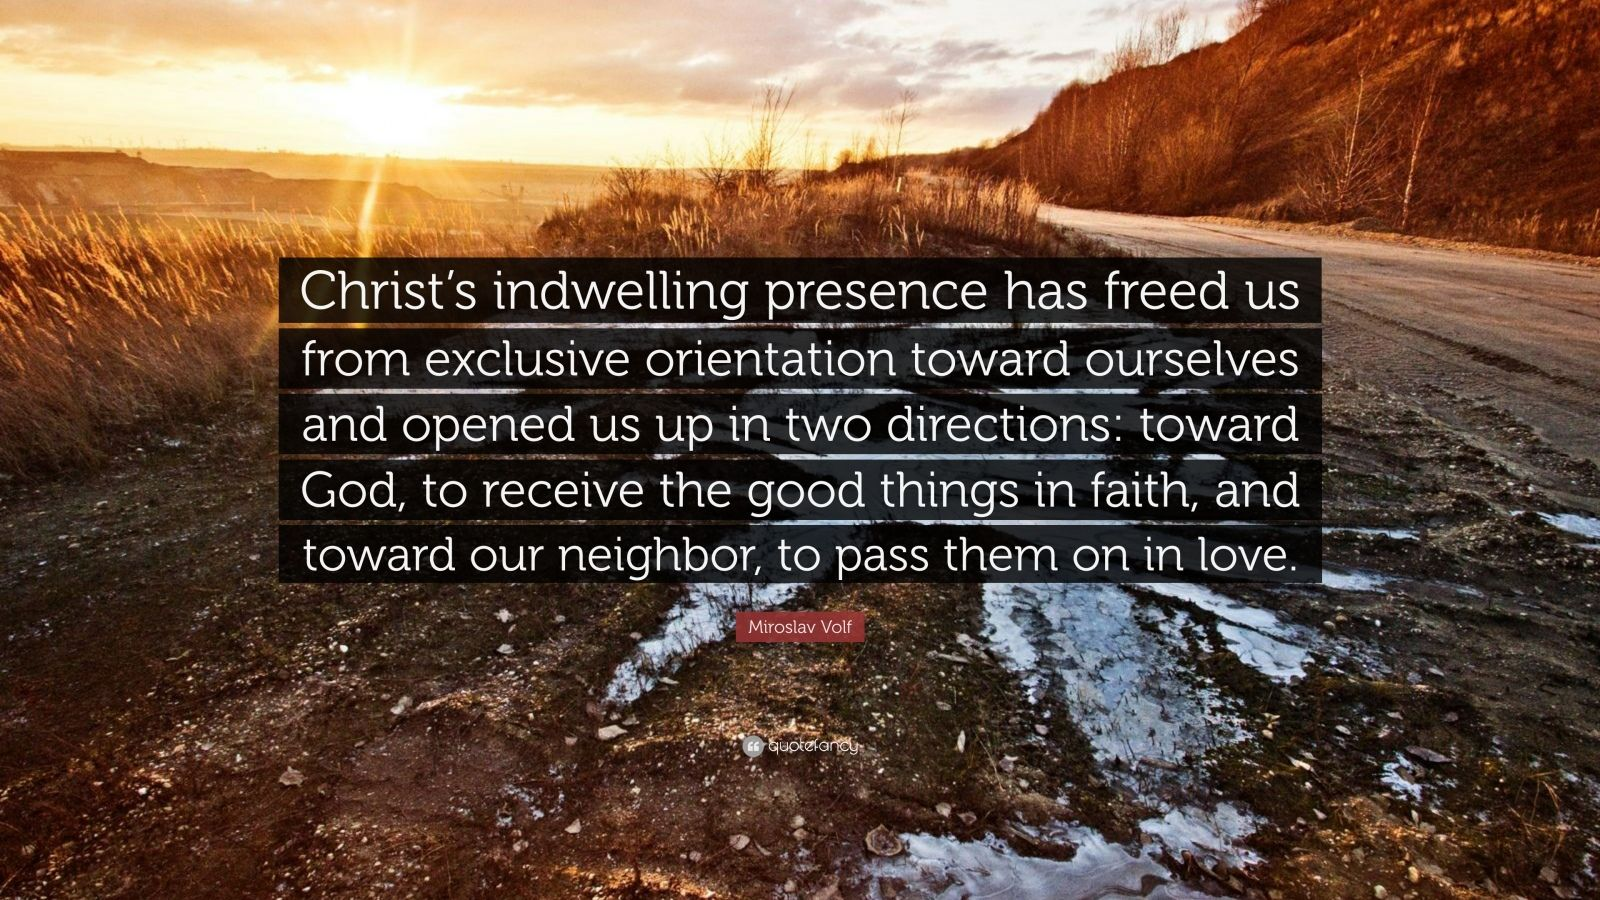 "Miroslav Volf Quote: ""Christ's indwelling presence has freed us from exclusive orientation toward ourselves and opened us up in two directions: toward God, to receive the good things in faith, and toward our neighbor, to pass them on in love."""